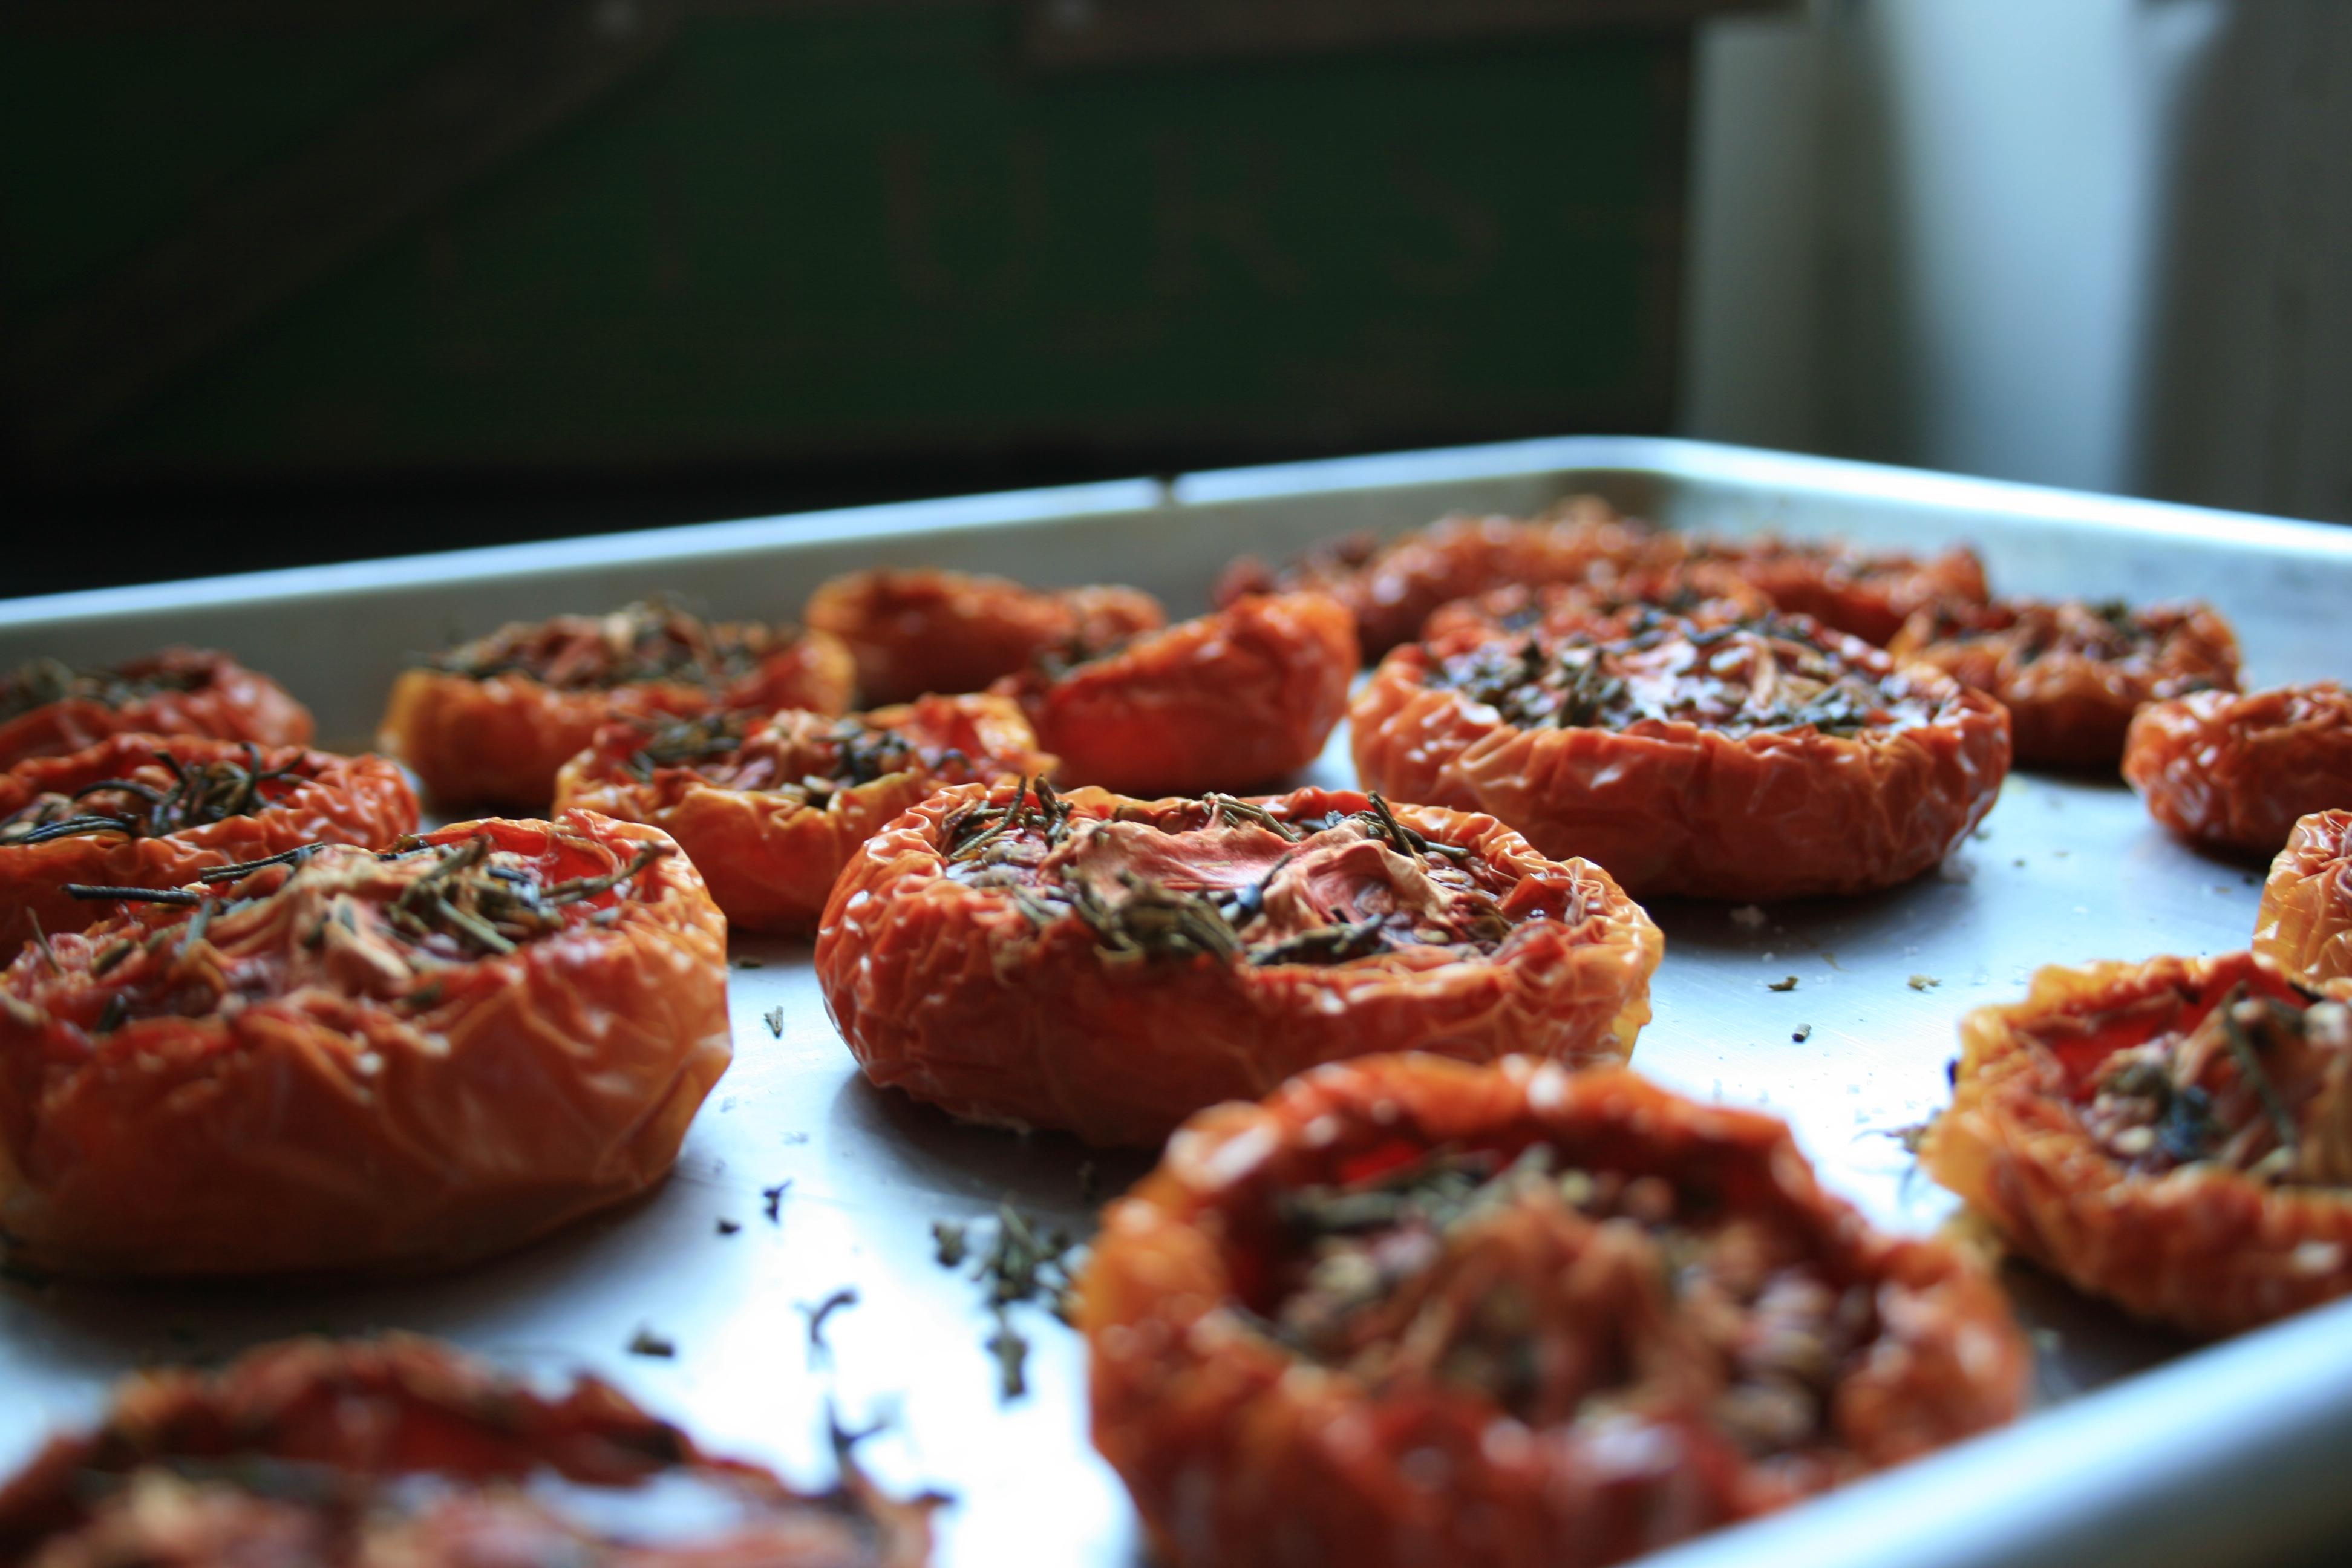 Slow Roasted Tomato, Caramelized Onion and Goats Cheese Tart